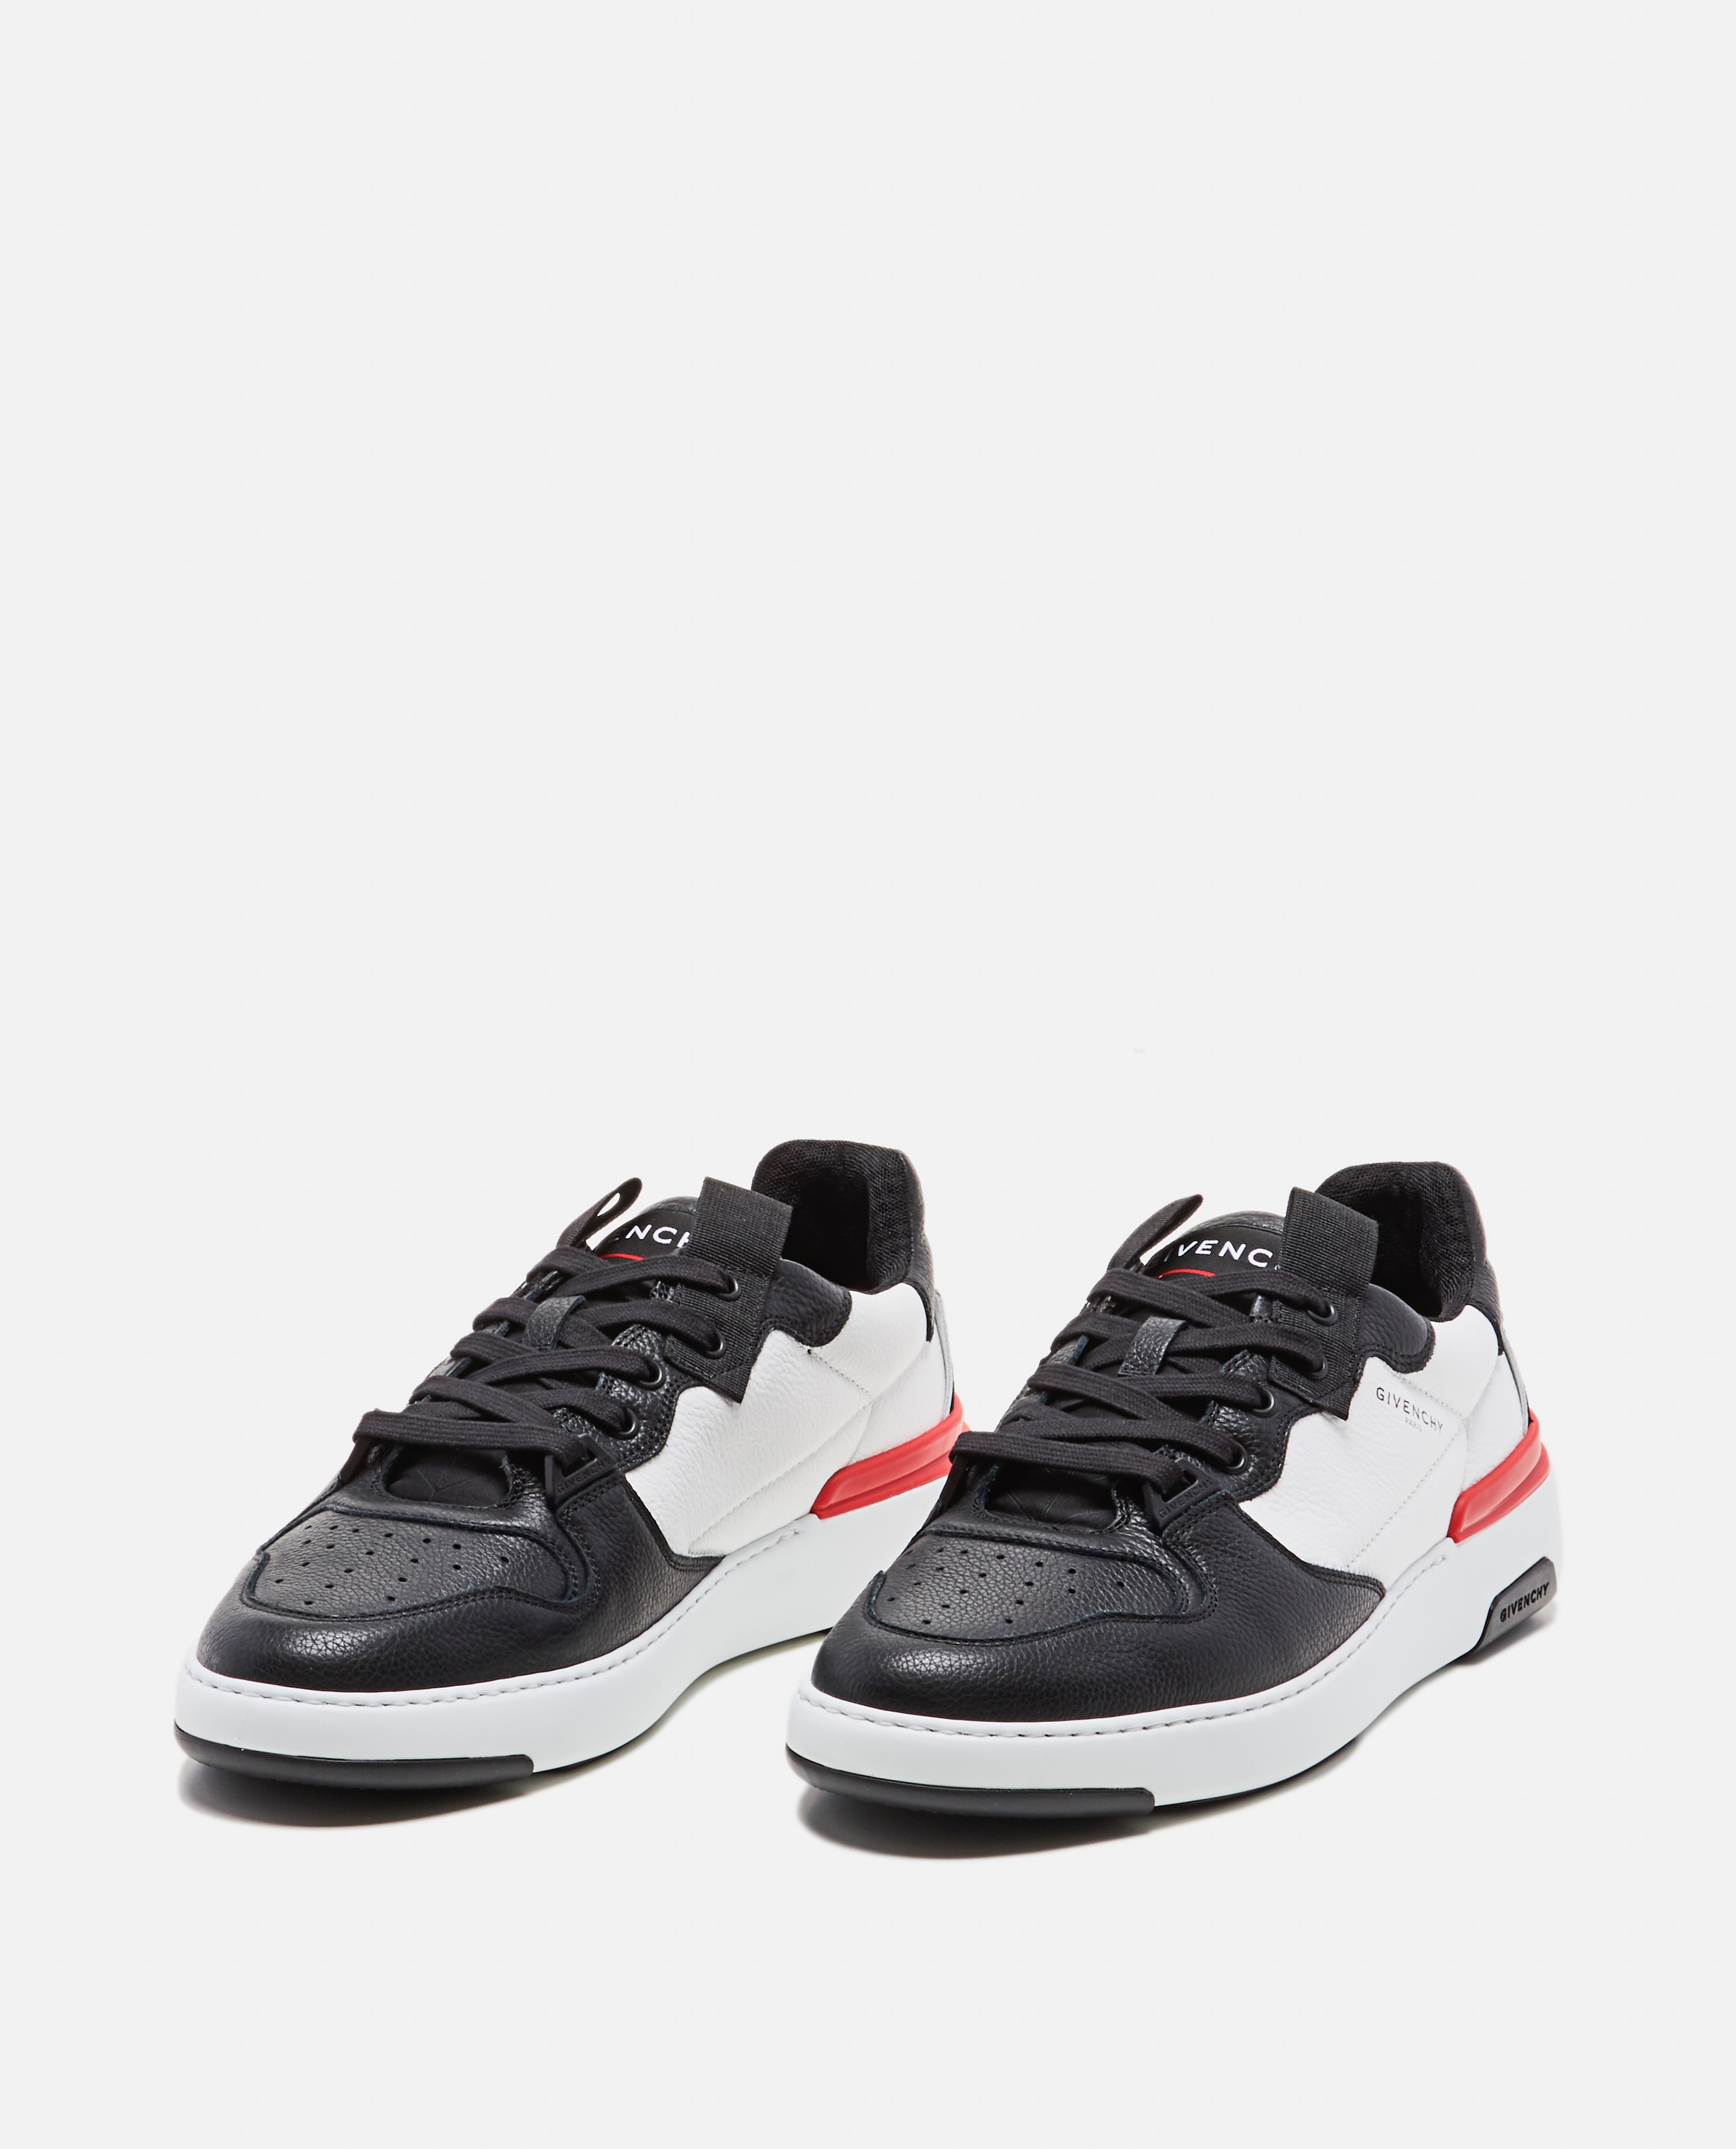 Low Wing Sneaker Men Givenchy 000226370033473 2